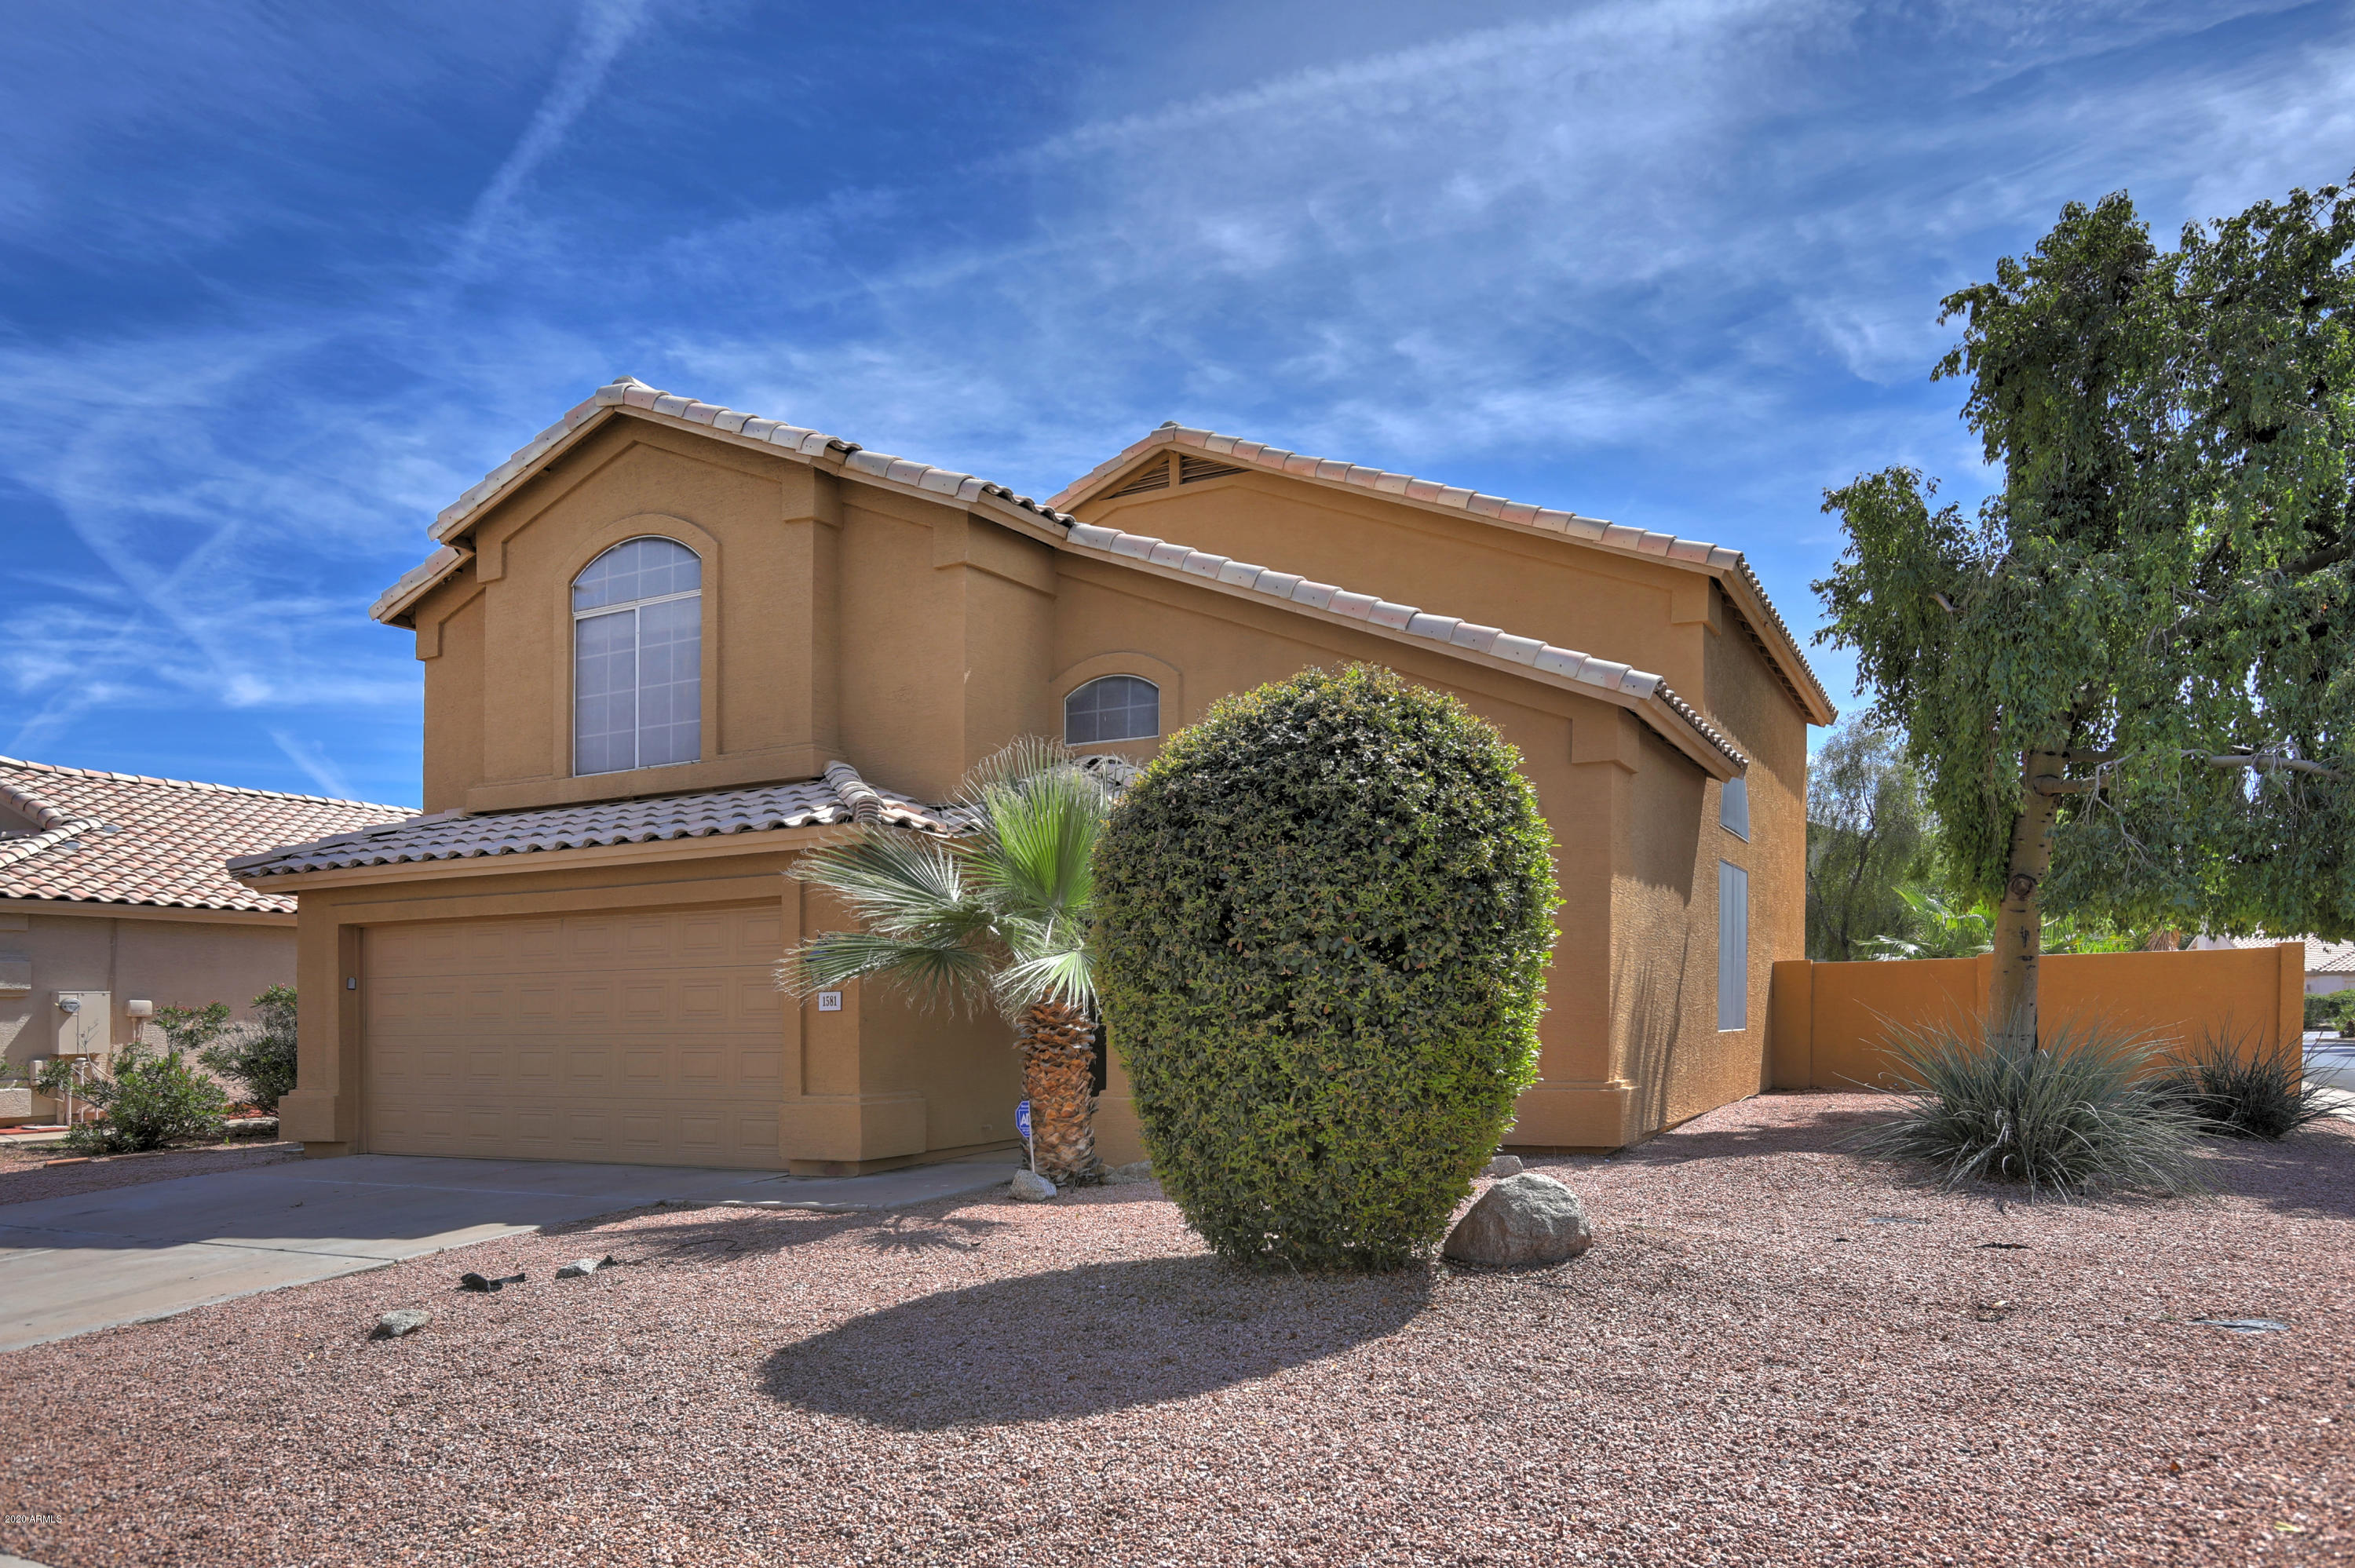 Photo of 1581 W Ivanhoe Court, Chandler, AZ 85224 (MLS # 6057403)